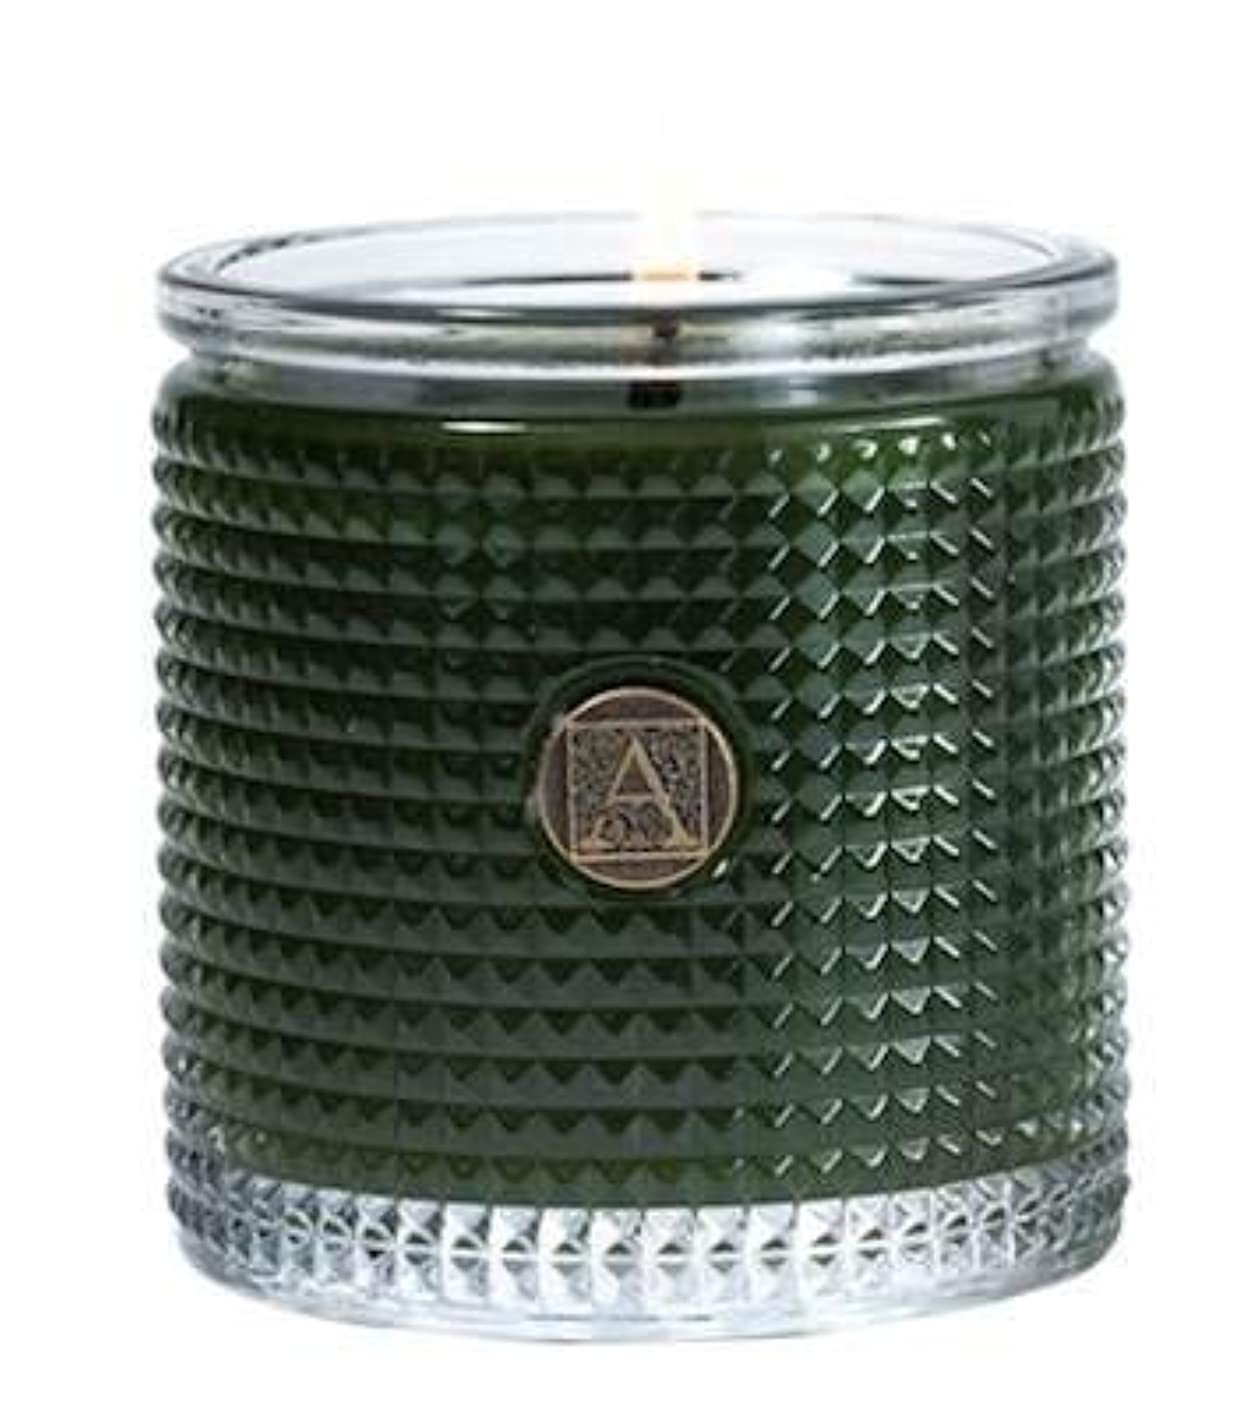 見物人メカニック感染するSmell of theツリーTextured Glass Candle、5.5 Oz by Aromatique